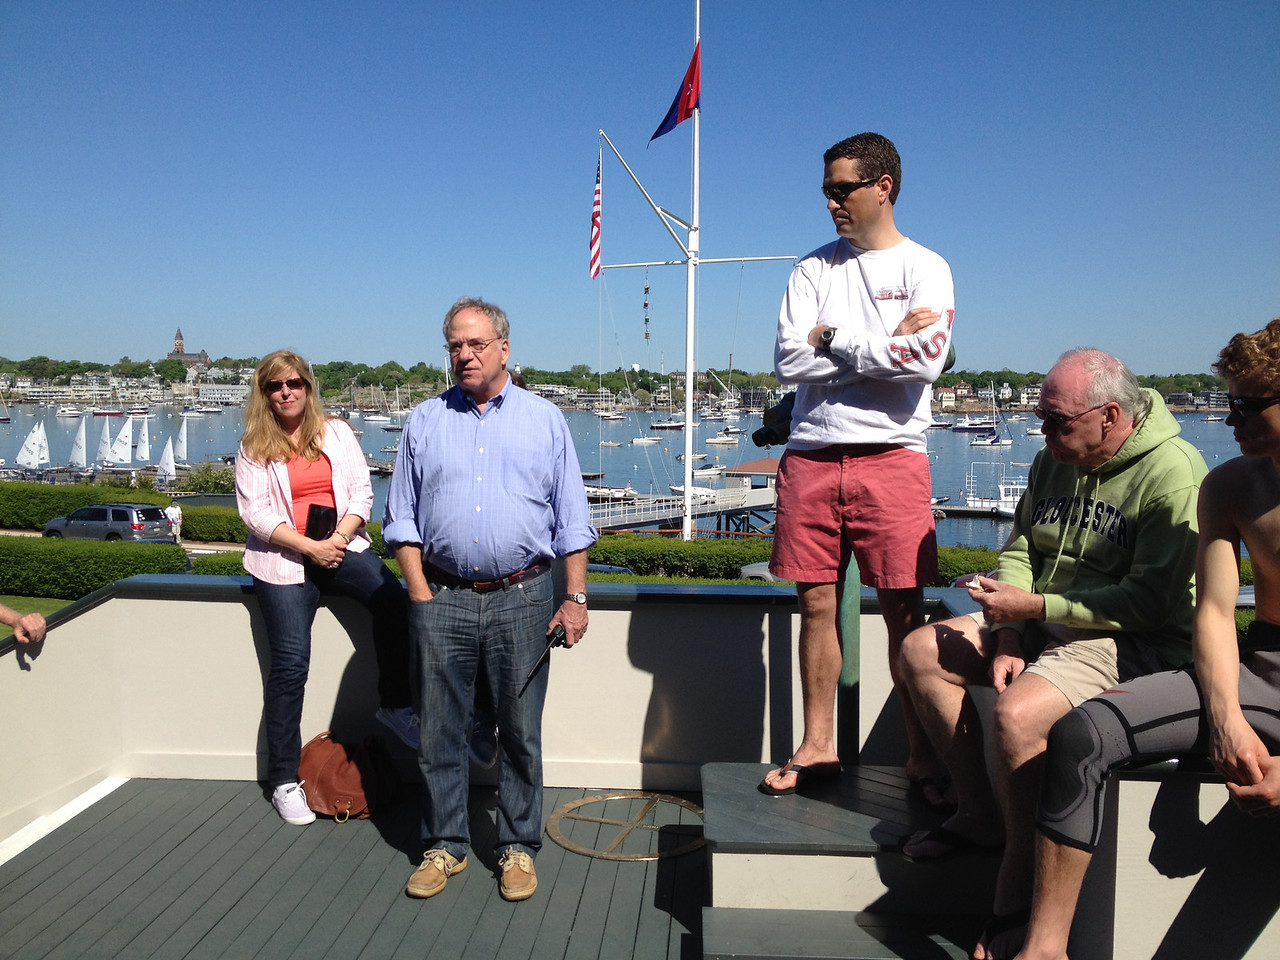 Skipper's meeting with Commodore and Event Chairman Ben Richardson